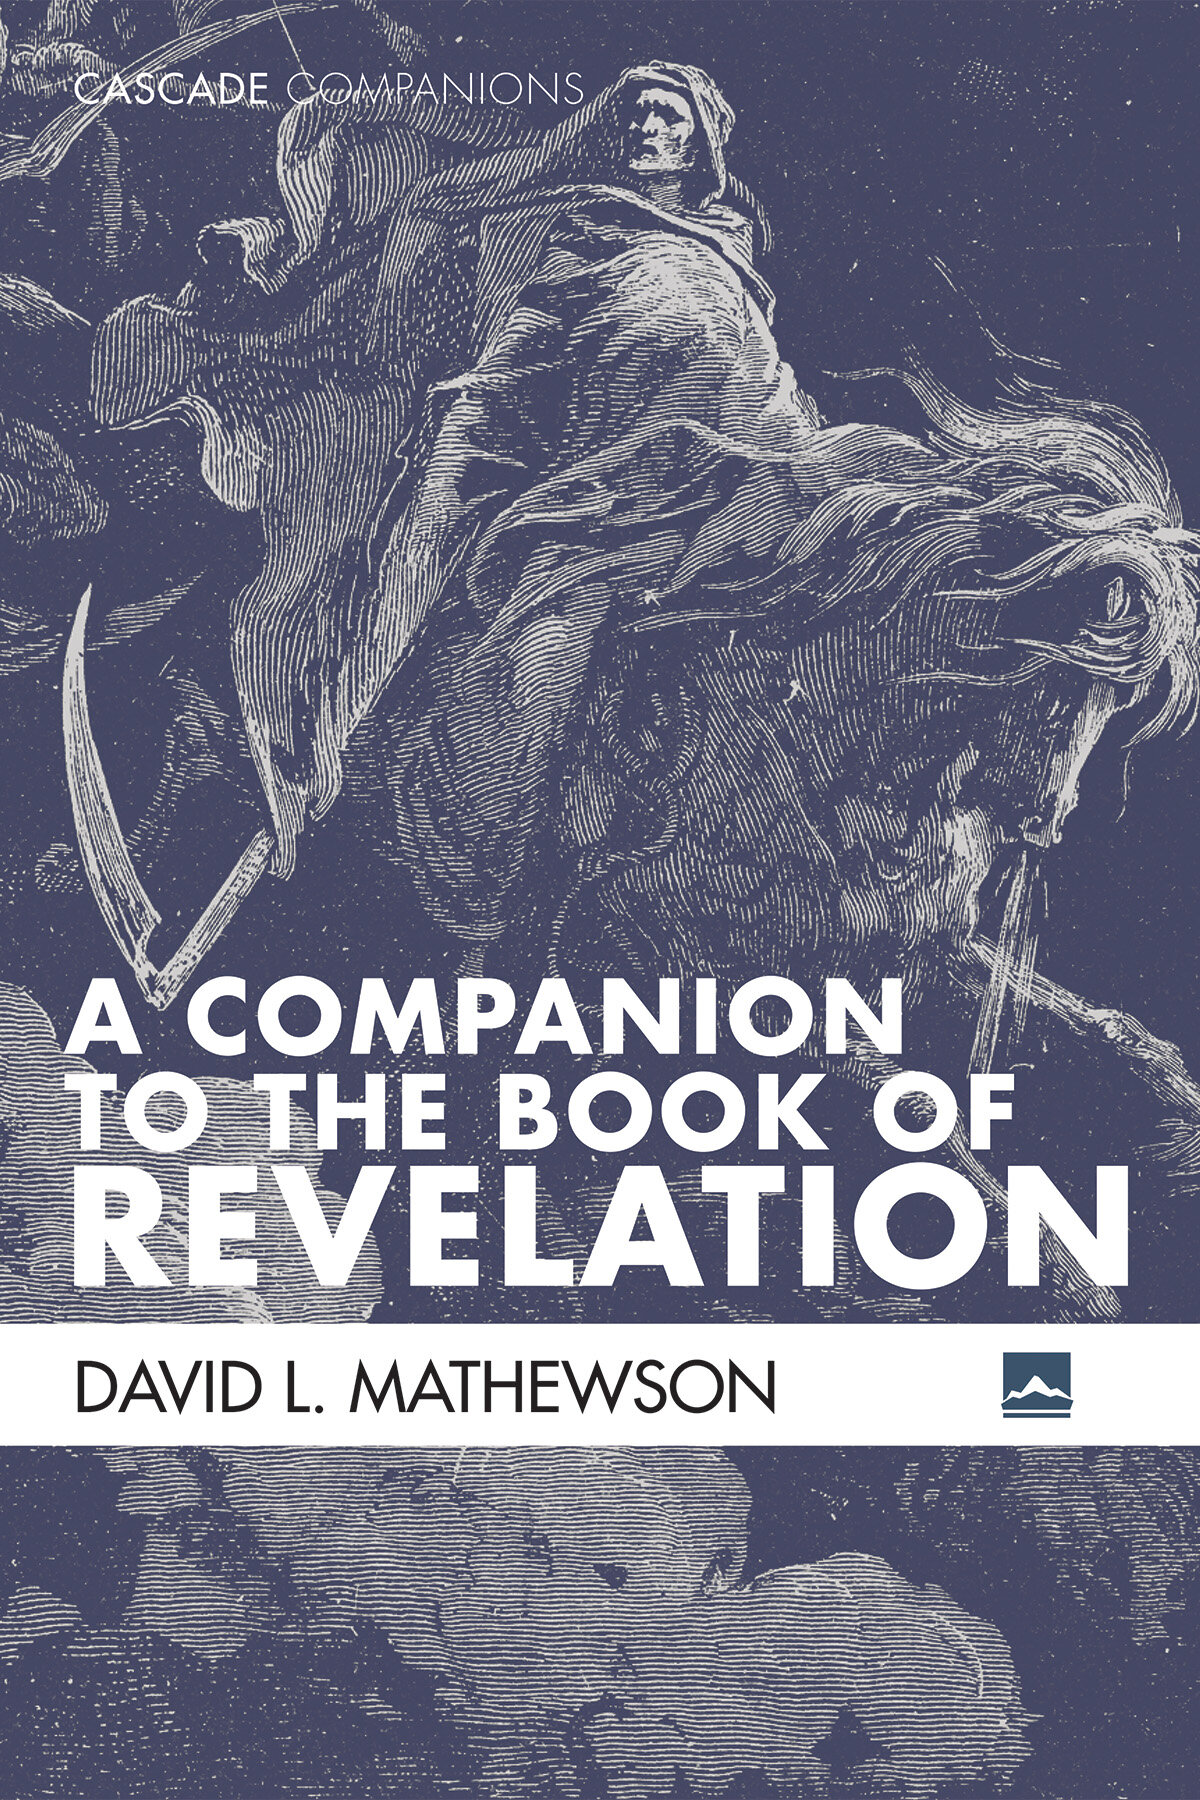 A Companion to the Book of Revelation (Cascade Companions)